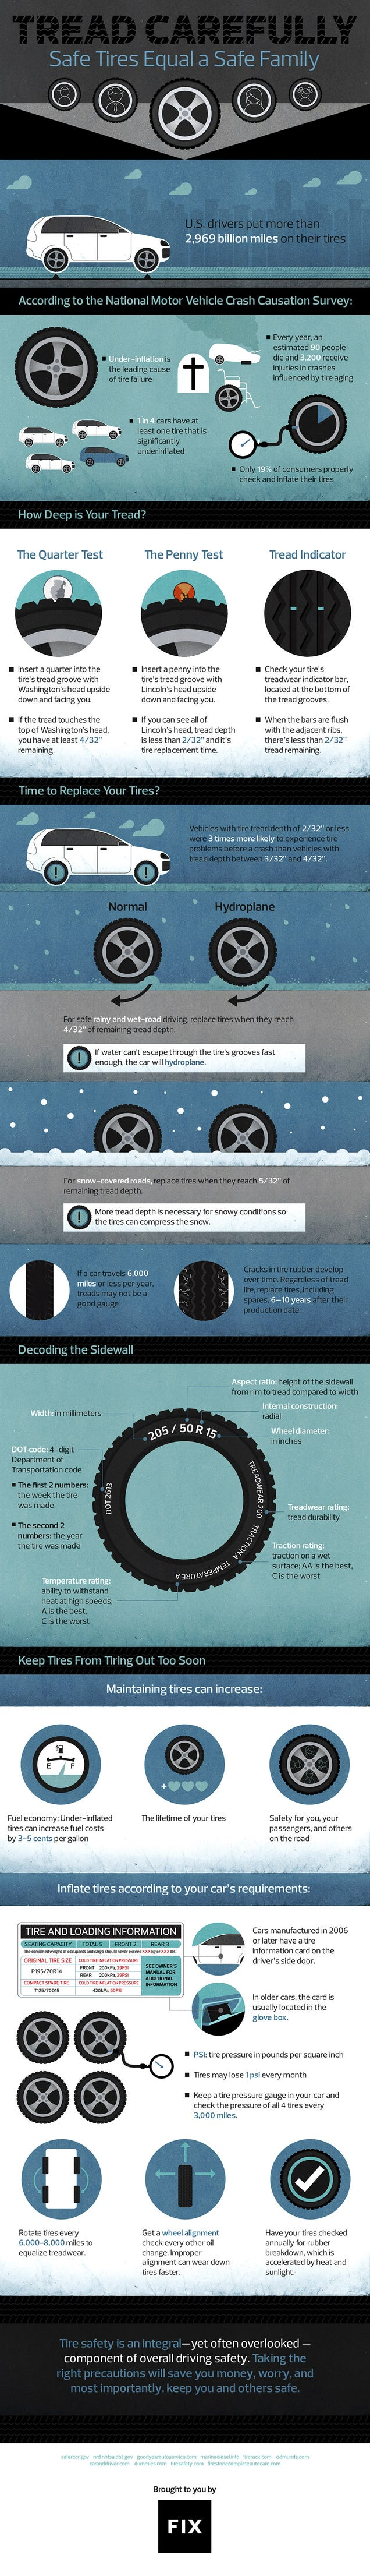 Everything You Need to Know About Tire Safety In One Handy Graphic